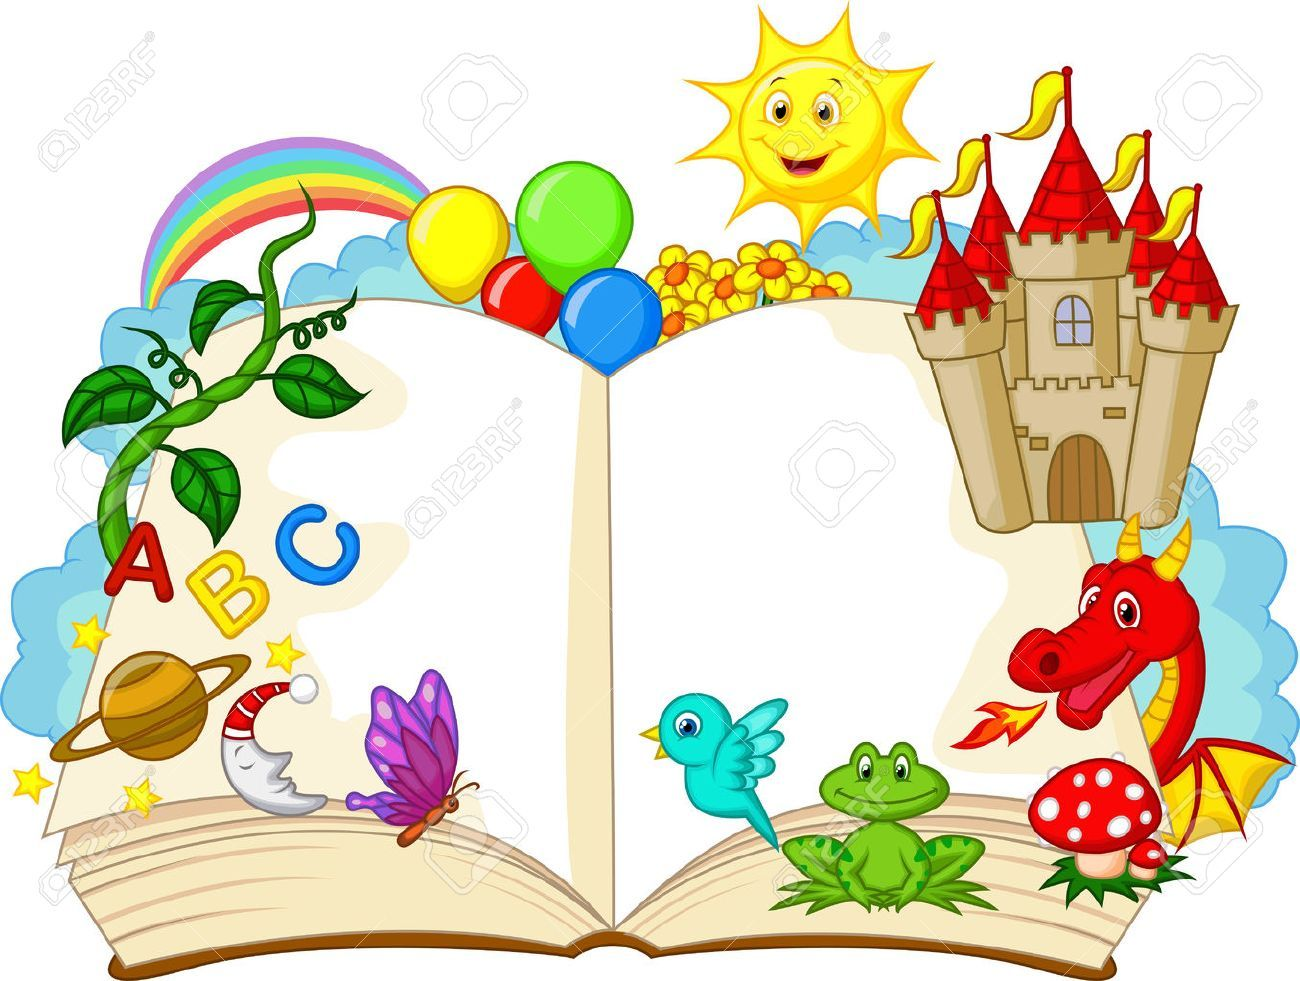 Stock vector crafts for. Fantasy clipart book